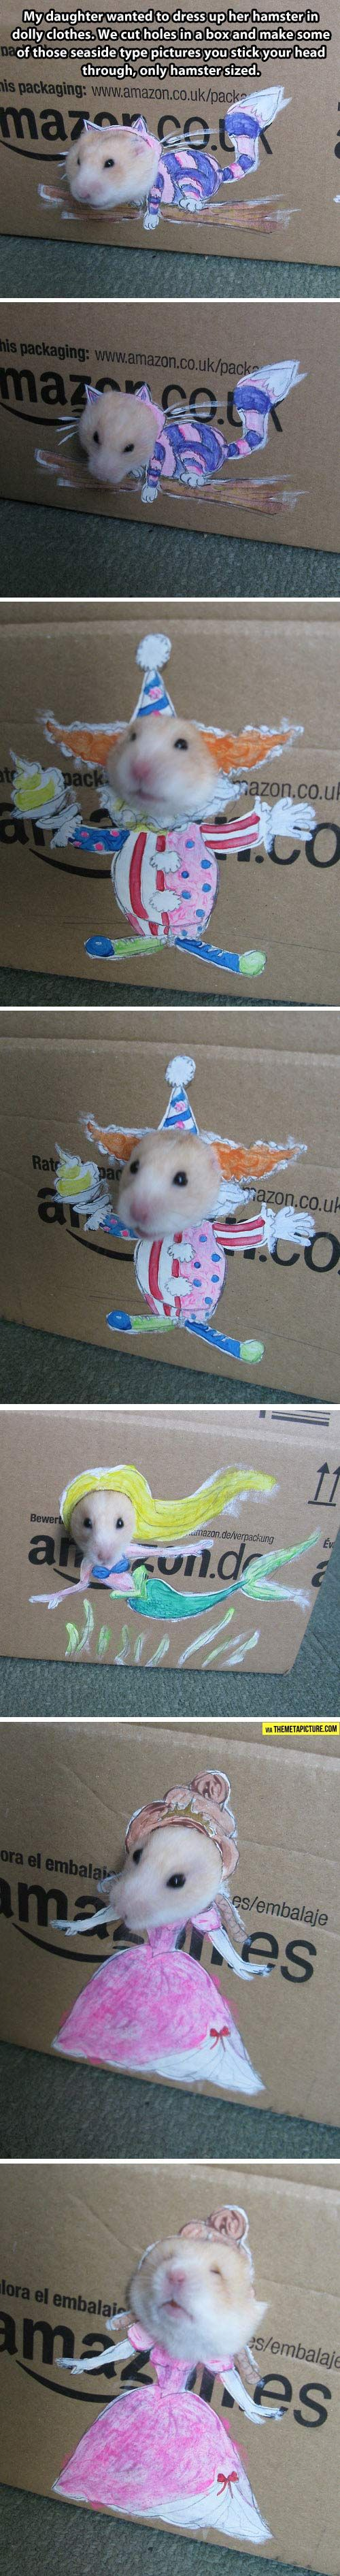 How to make a little girl really happy… putting hamster in doll clothes